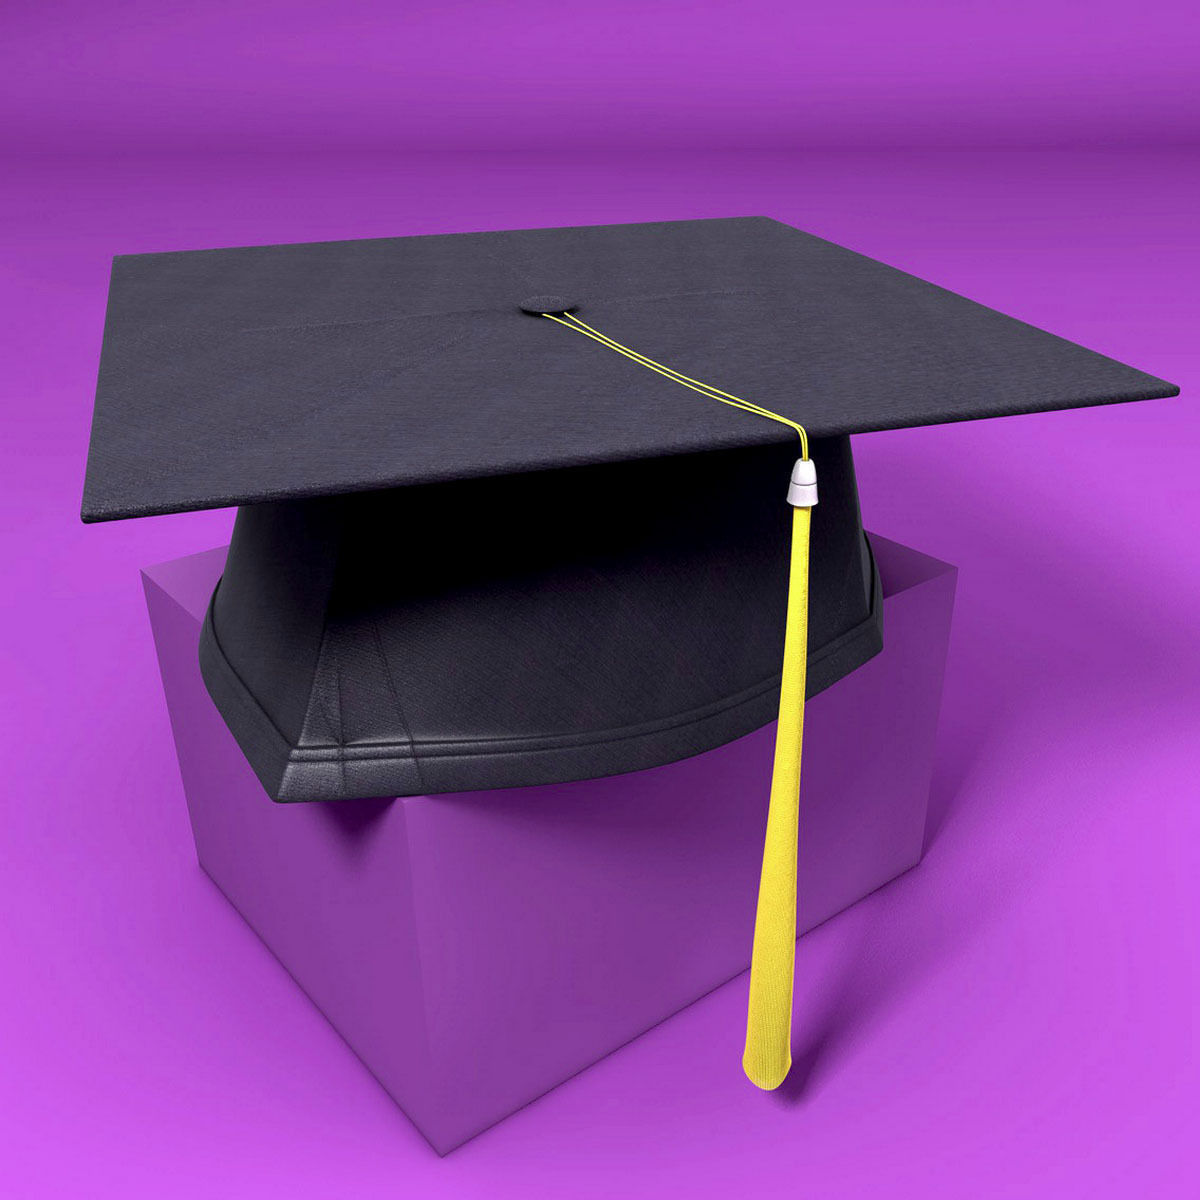 Fullsize Of Graduation Cap Images